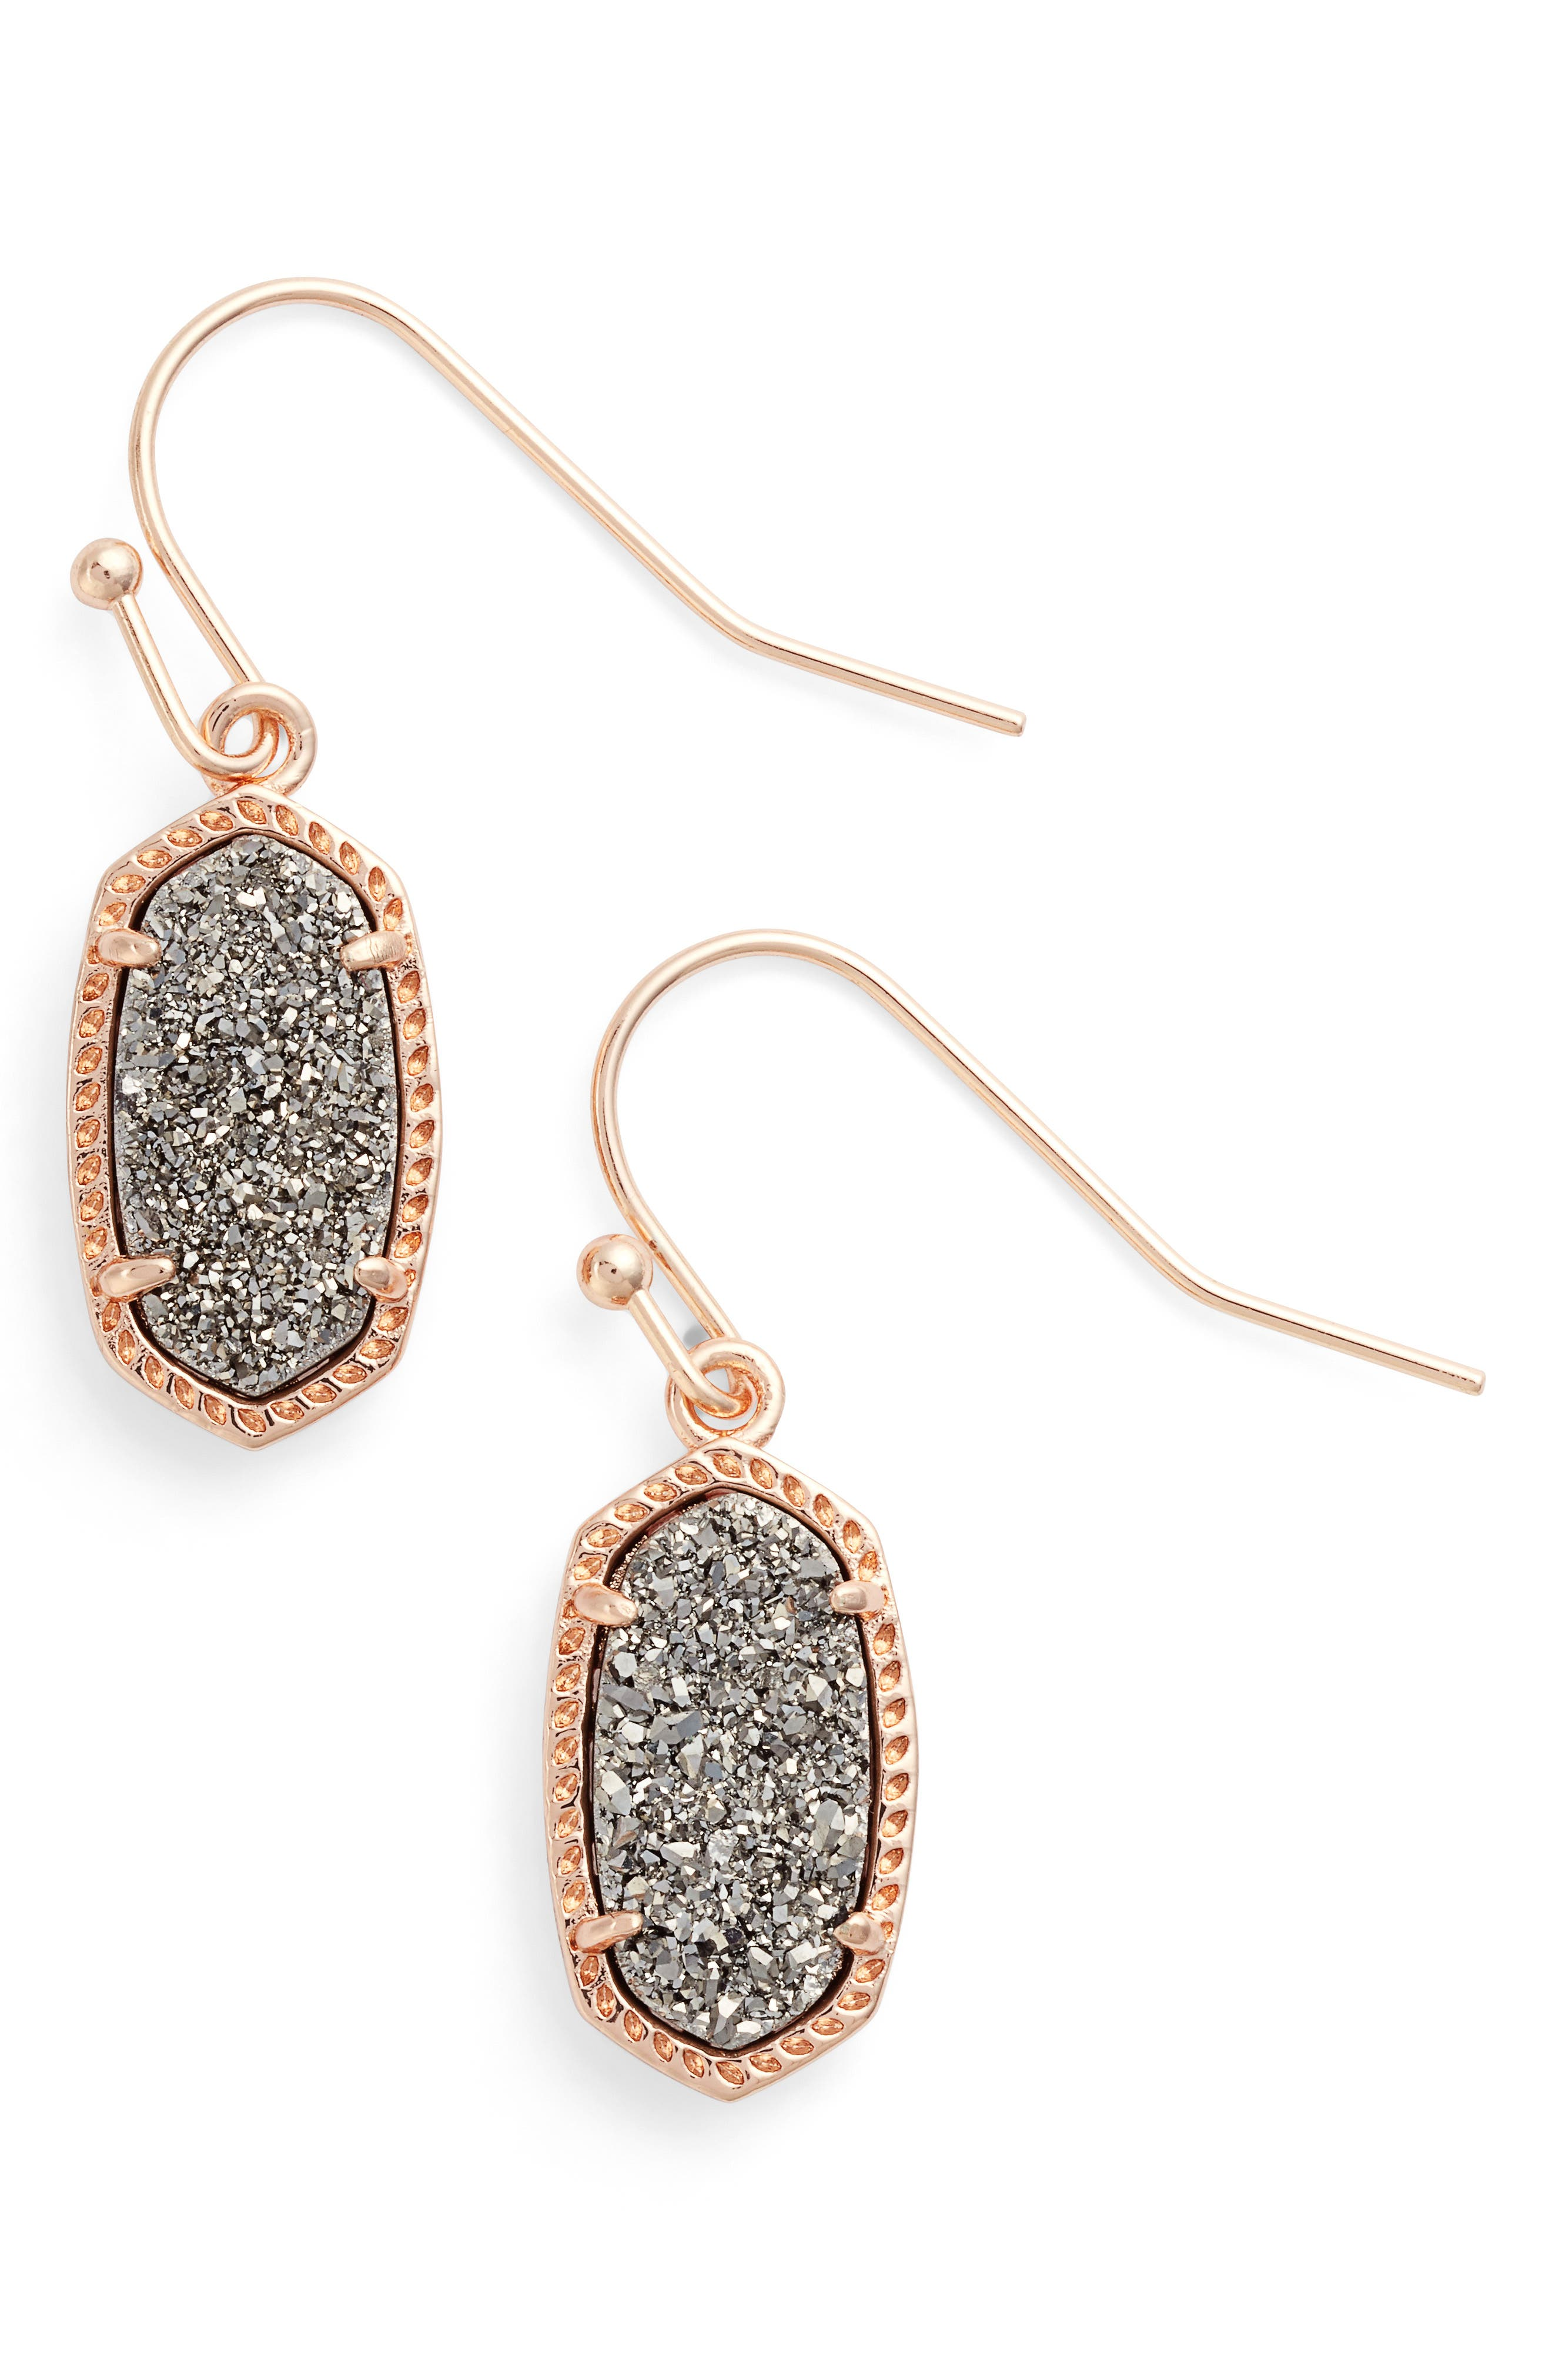 Lee Small Drop Earrings,                             Main thumbnail 1, color,                             Platinum Drusy/ Rose Gold